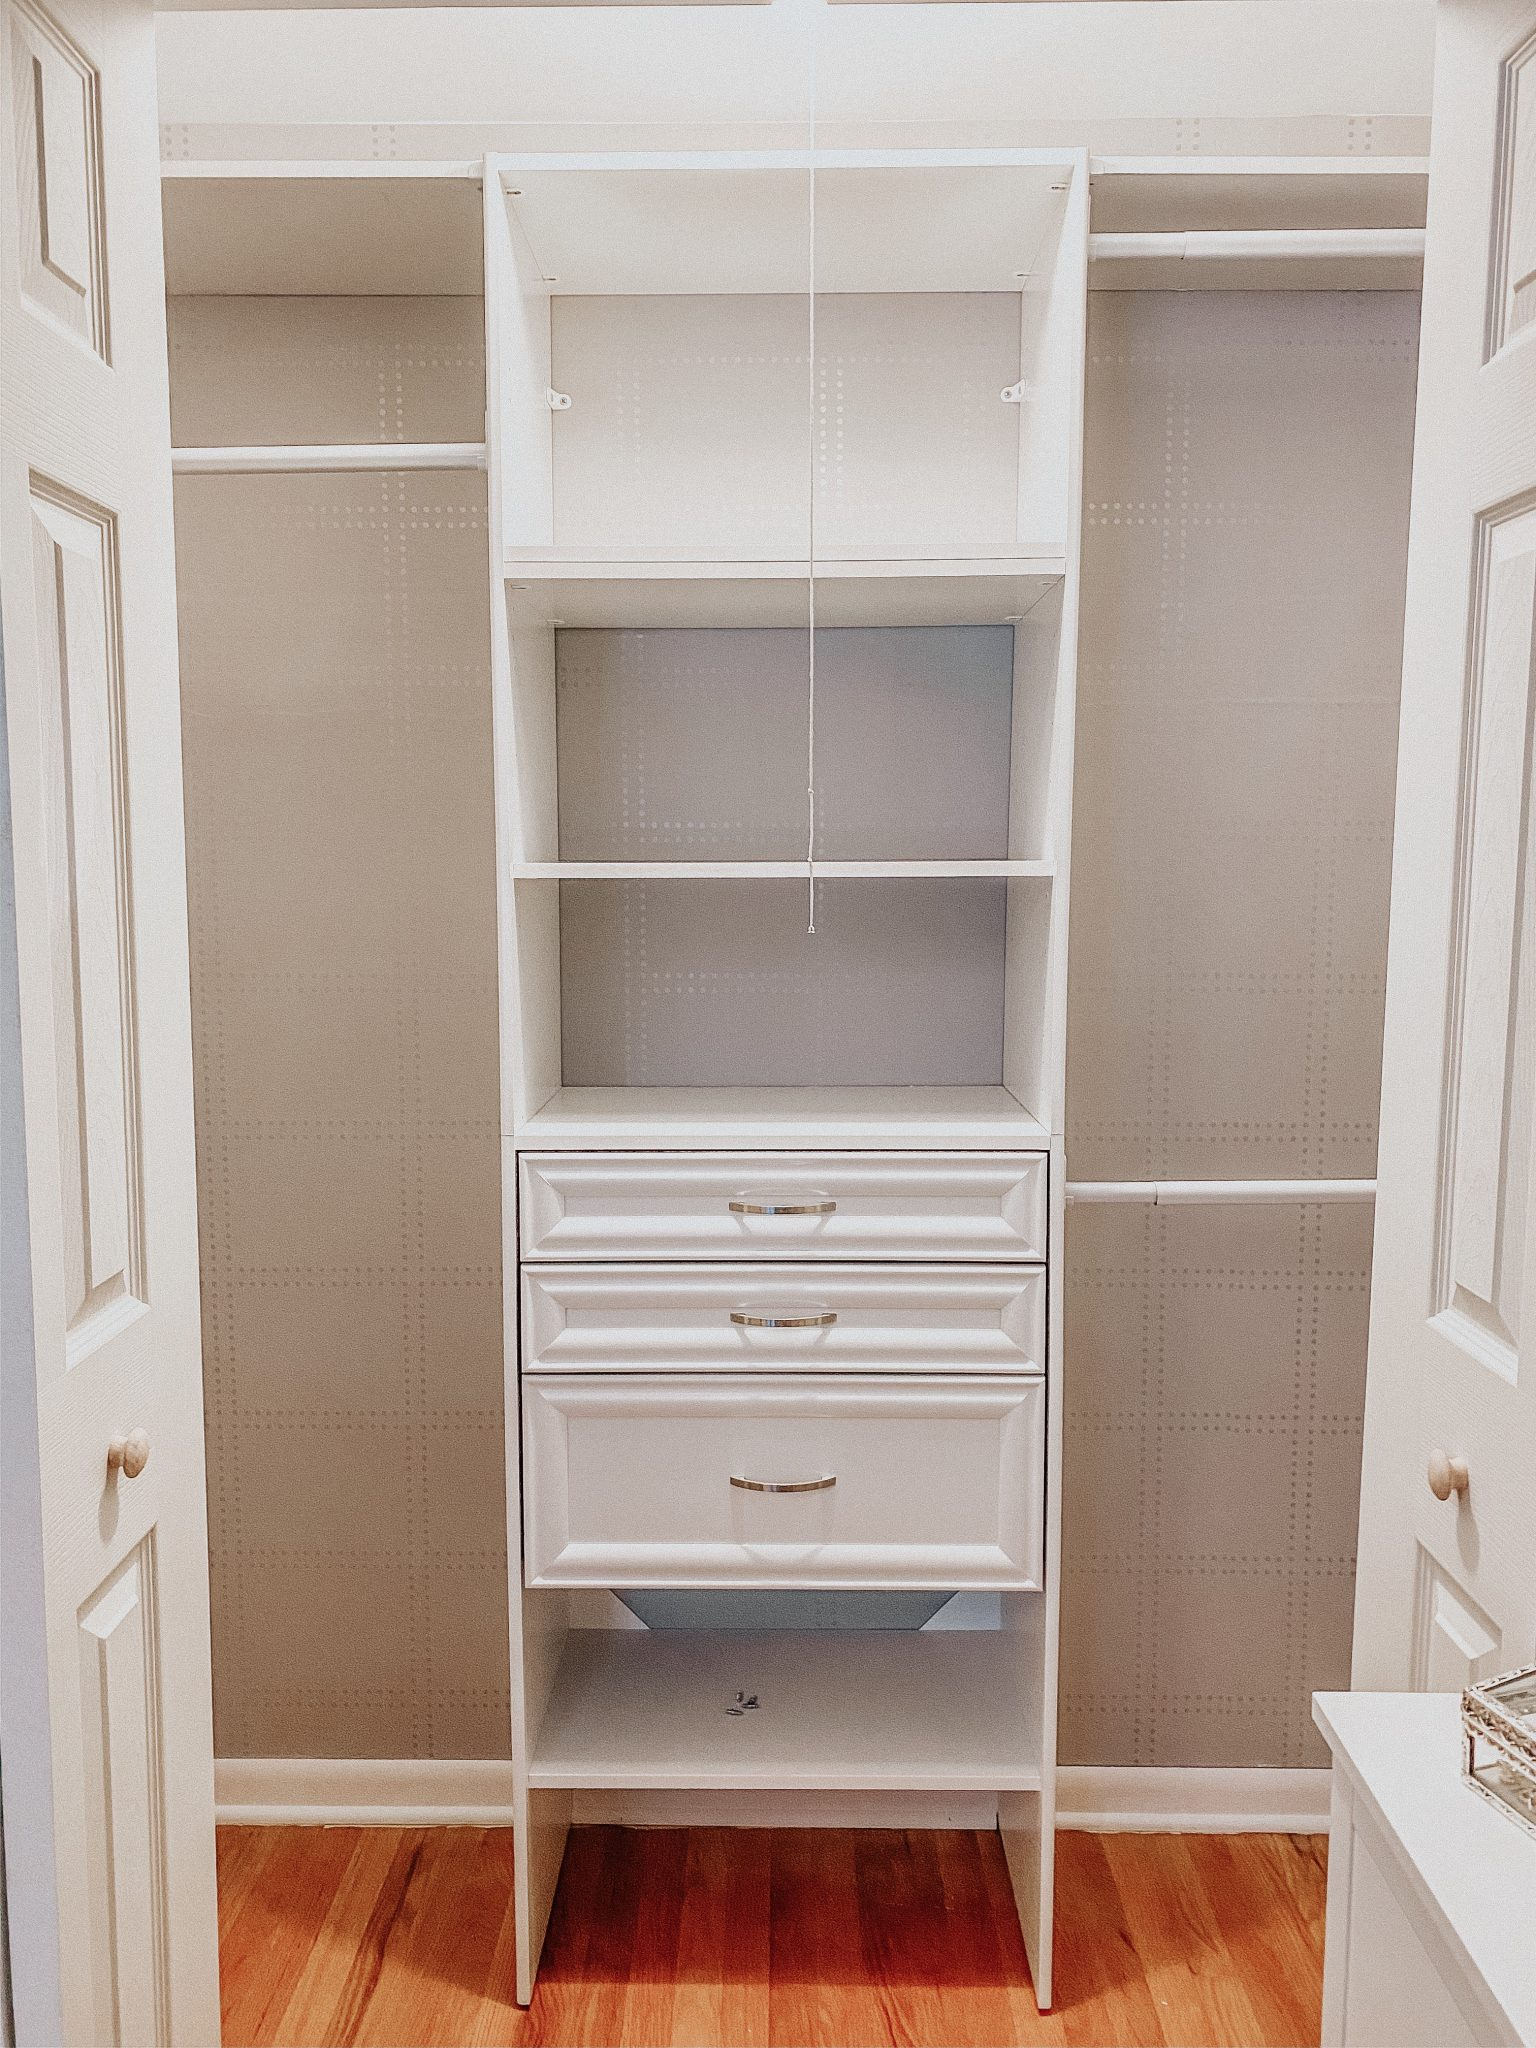 DIY Closet Makeover | Daily Splendor Life and Style Blog | finished closet #closetorganizer #smallcloset #smallspaces #organizedcloset #semicustomcloset #budgetcloset #diycloset #diyhomeproject #thehomedepot #homedepot #thecontainerstore #closetmaid #wallpaper #drawers